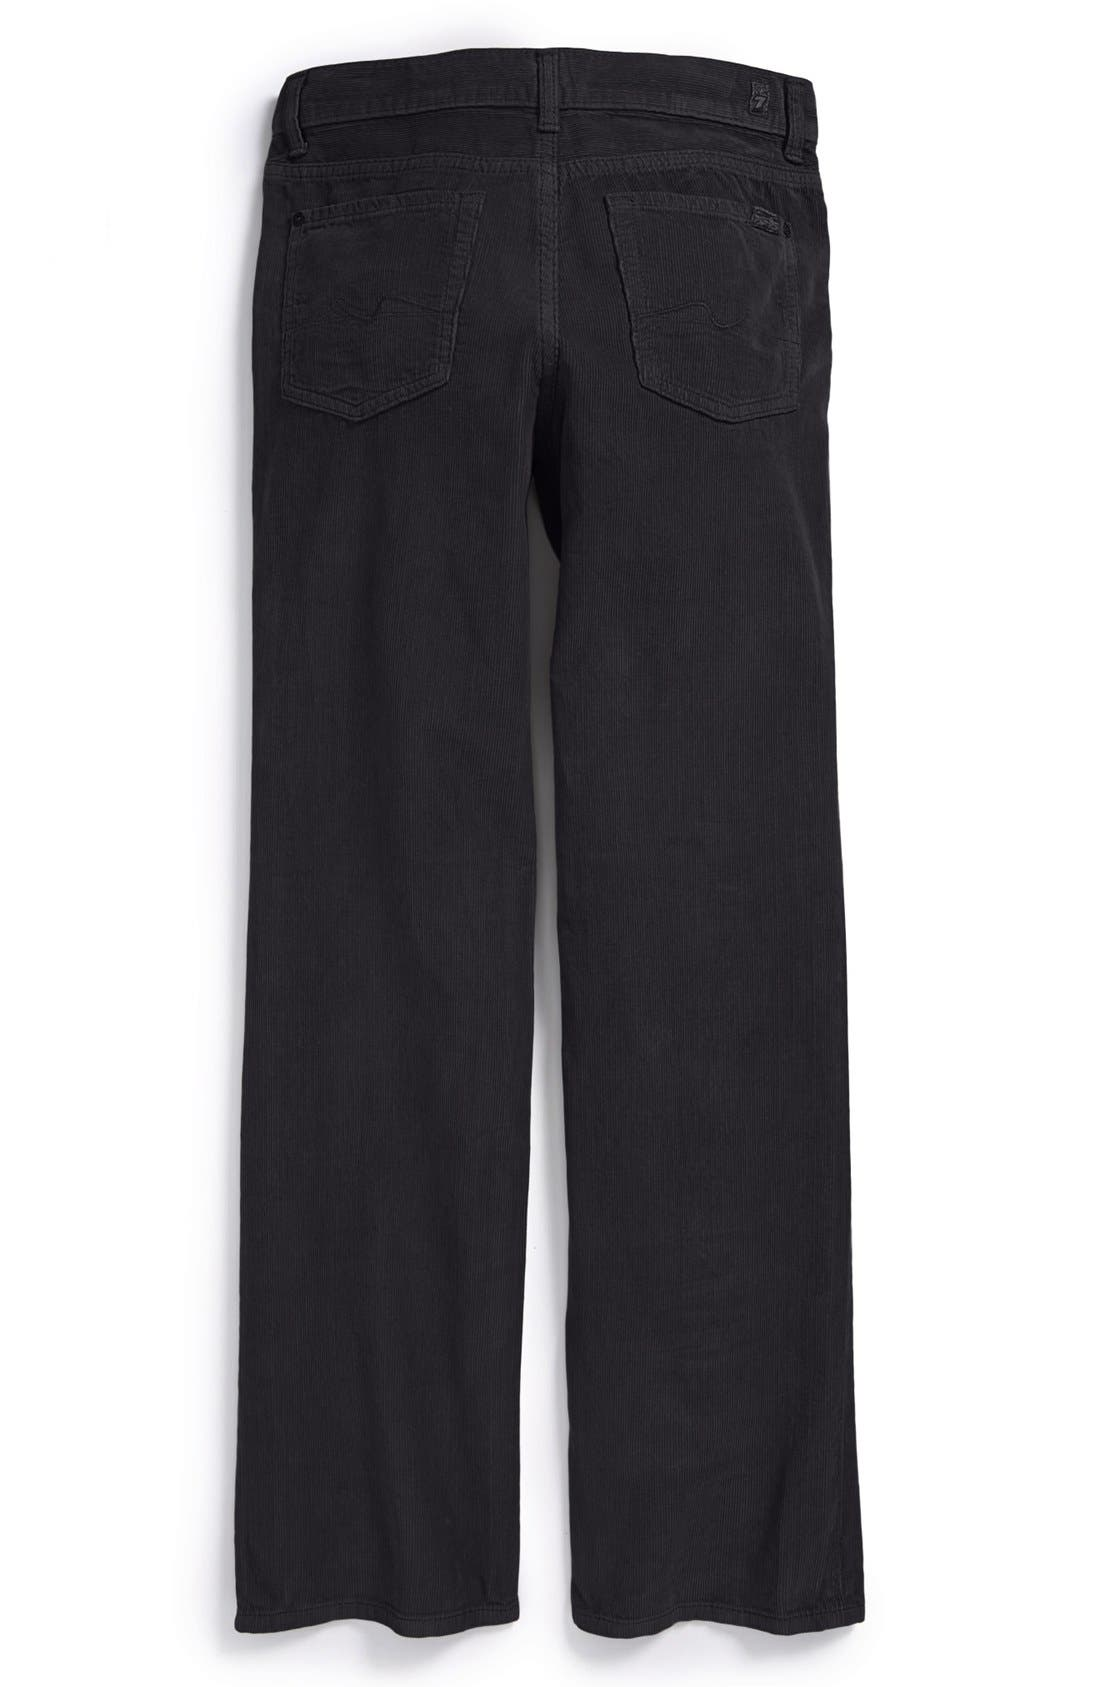 Main Image - 7 For All Mankind® 'Standard' Straight Leg Corduroy Pants (Big Boys)